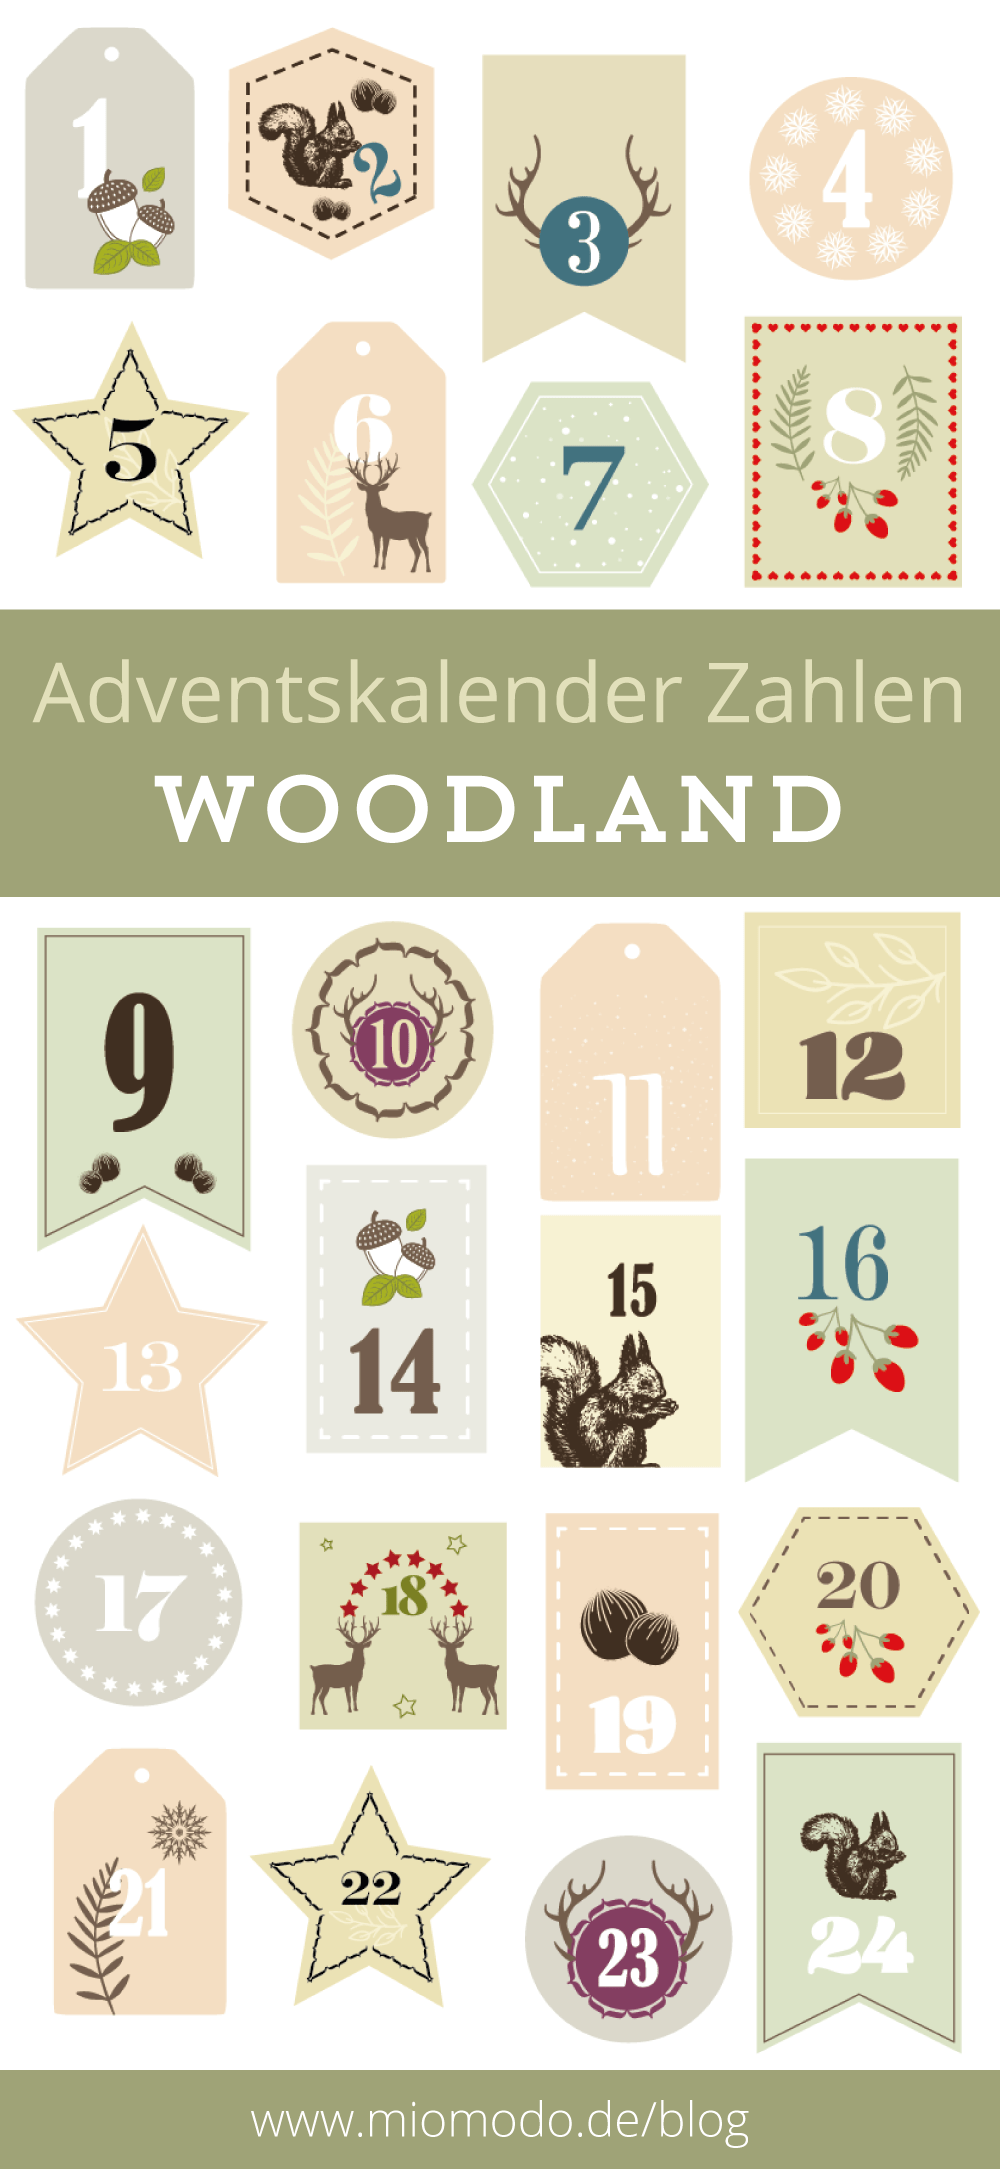 diy adventskalender zahlen woodland miomodo diy blog. Black Bedroom Furniture Sets. Home Design Ideas